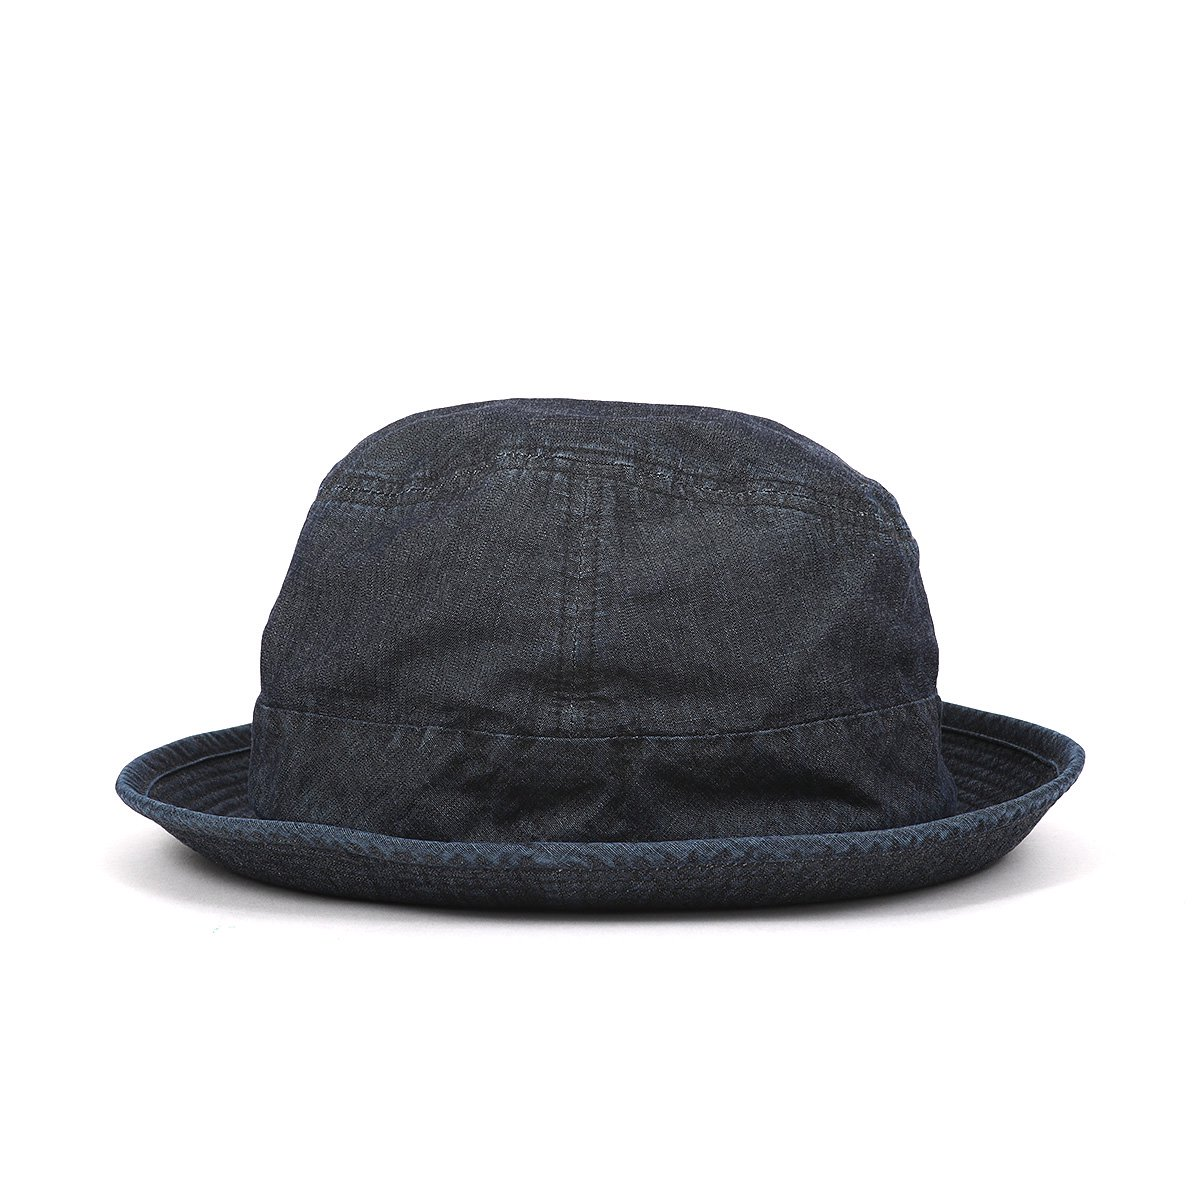 CHAMBRAY COMPACT HAT 詳細画像2